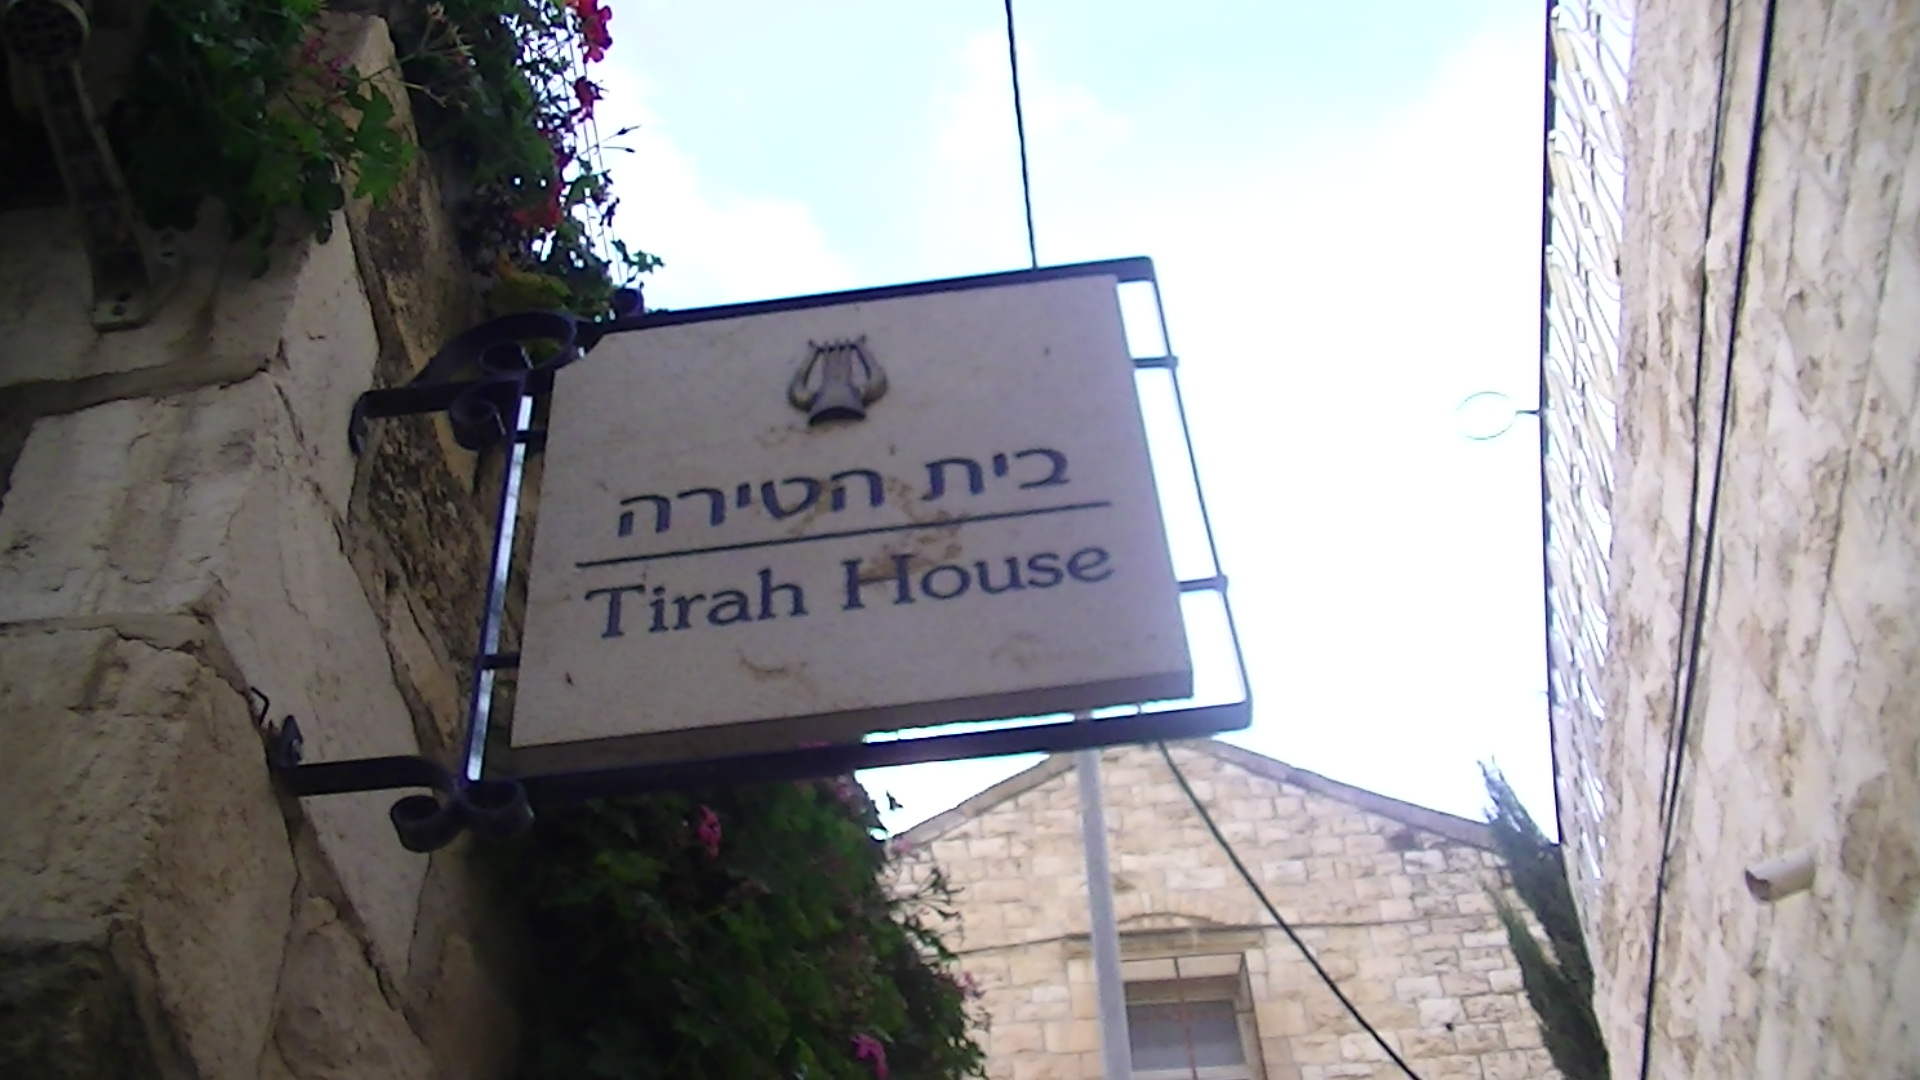 The illegal 'Tirah House' settlement in Silwan - photo taken by Corporate Watch researchers 24/01/12